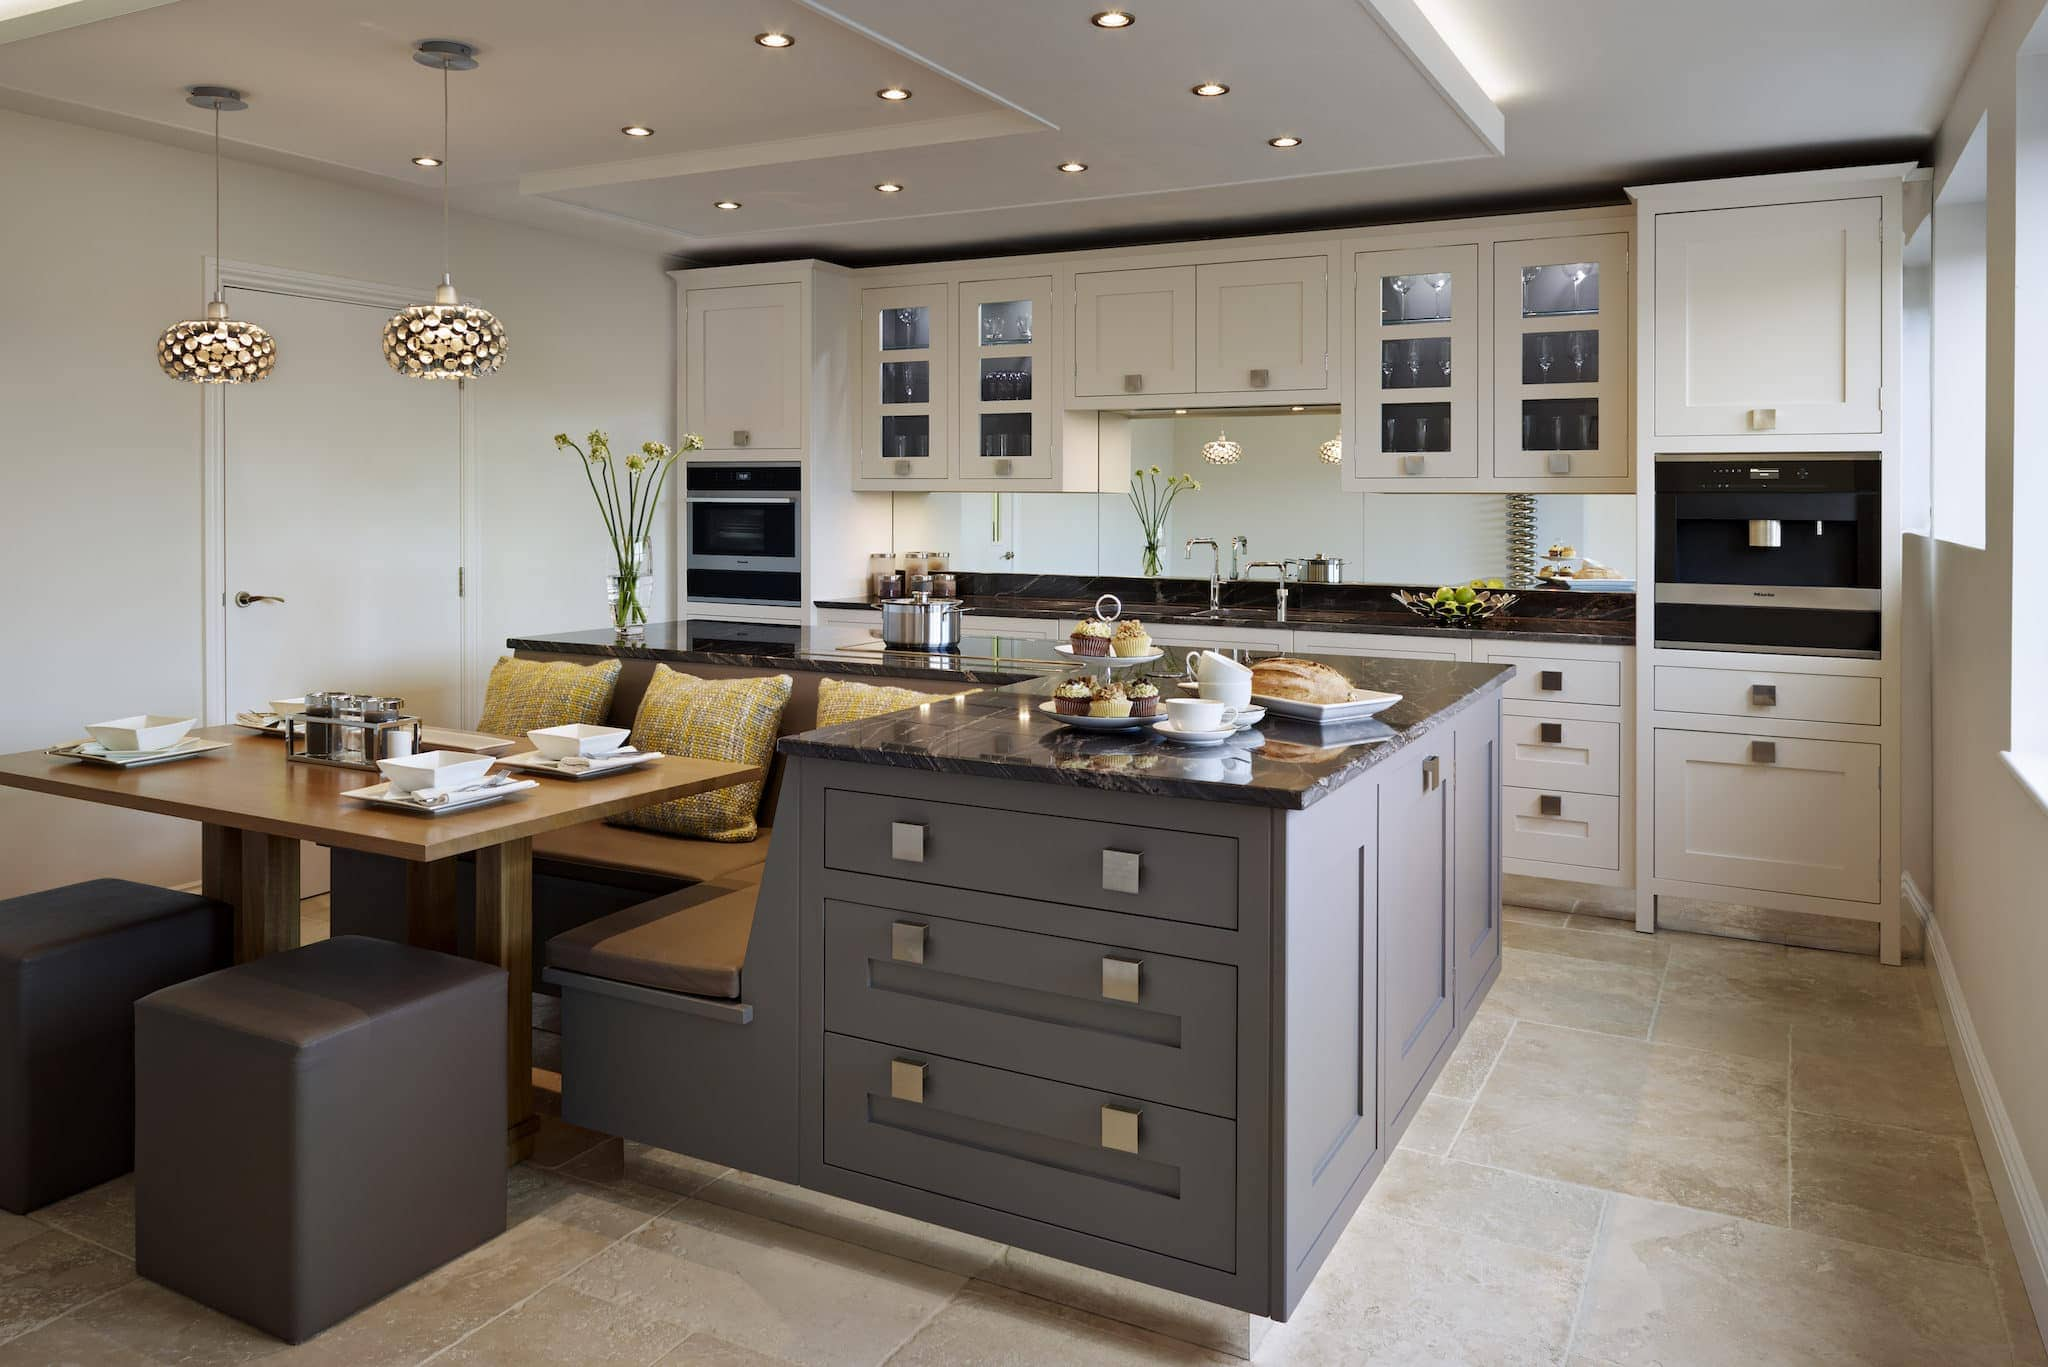 Guest Blog by Davonport Kitchens: Kitchens in Garden Rooms